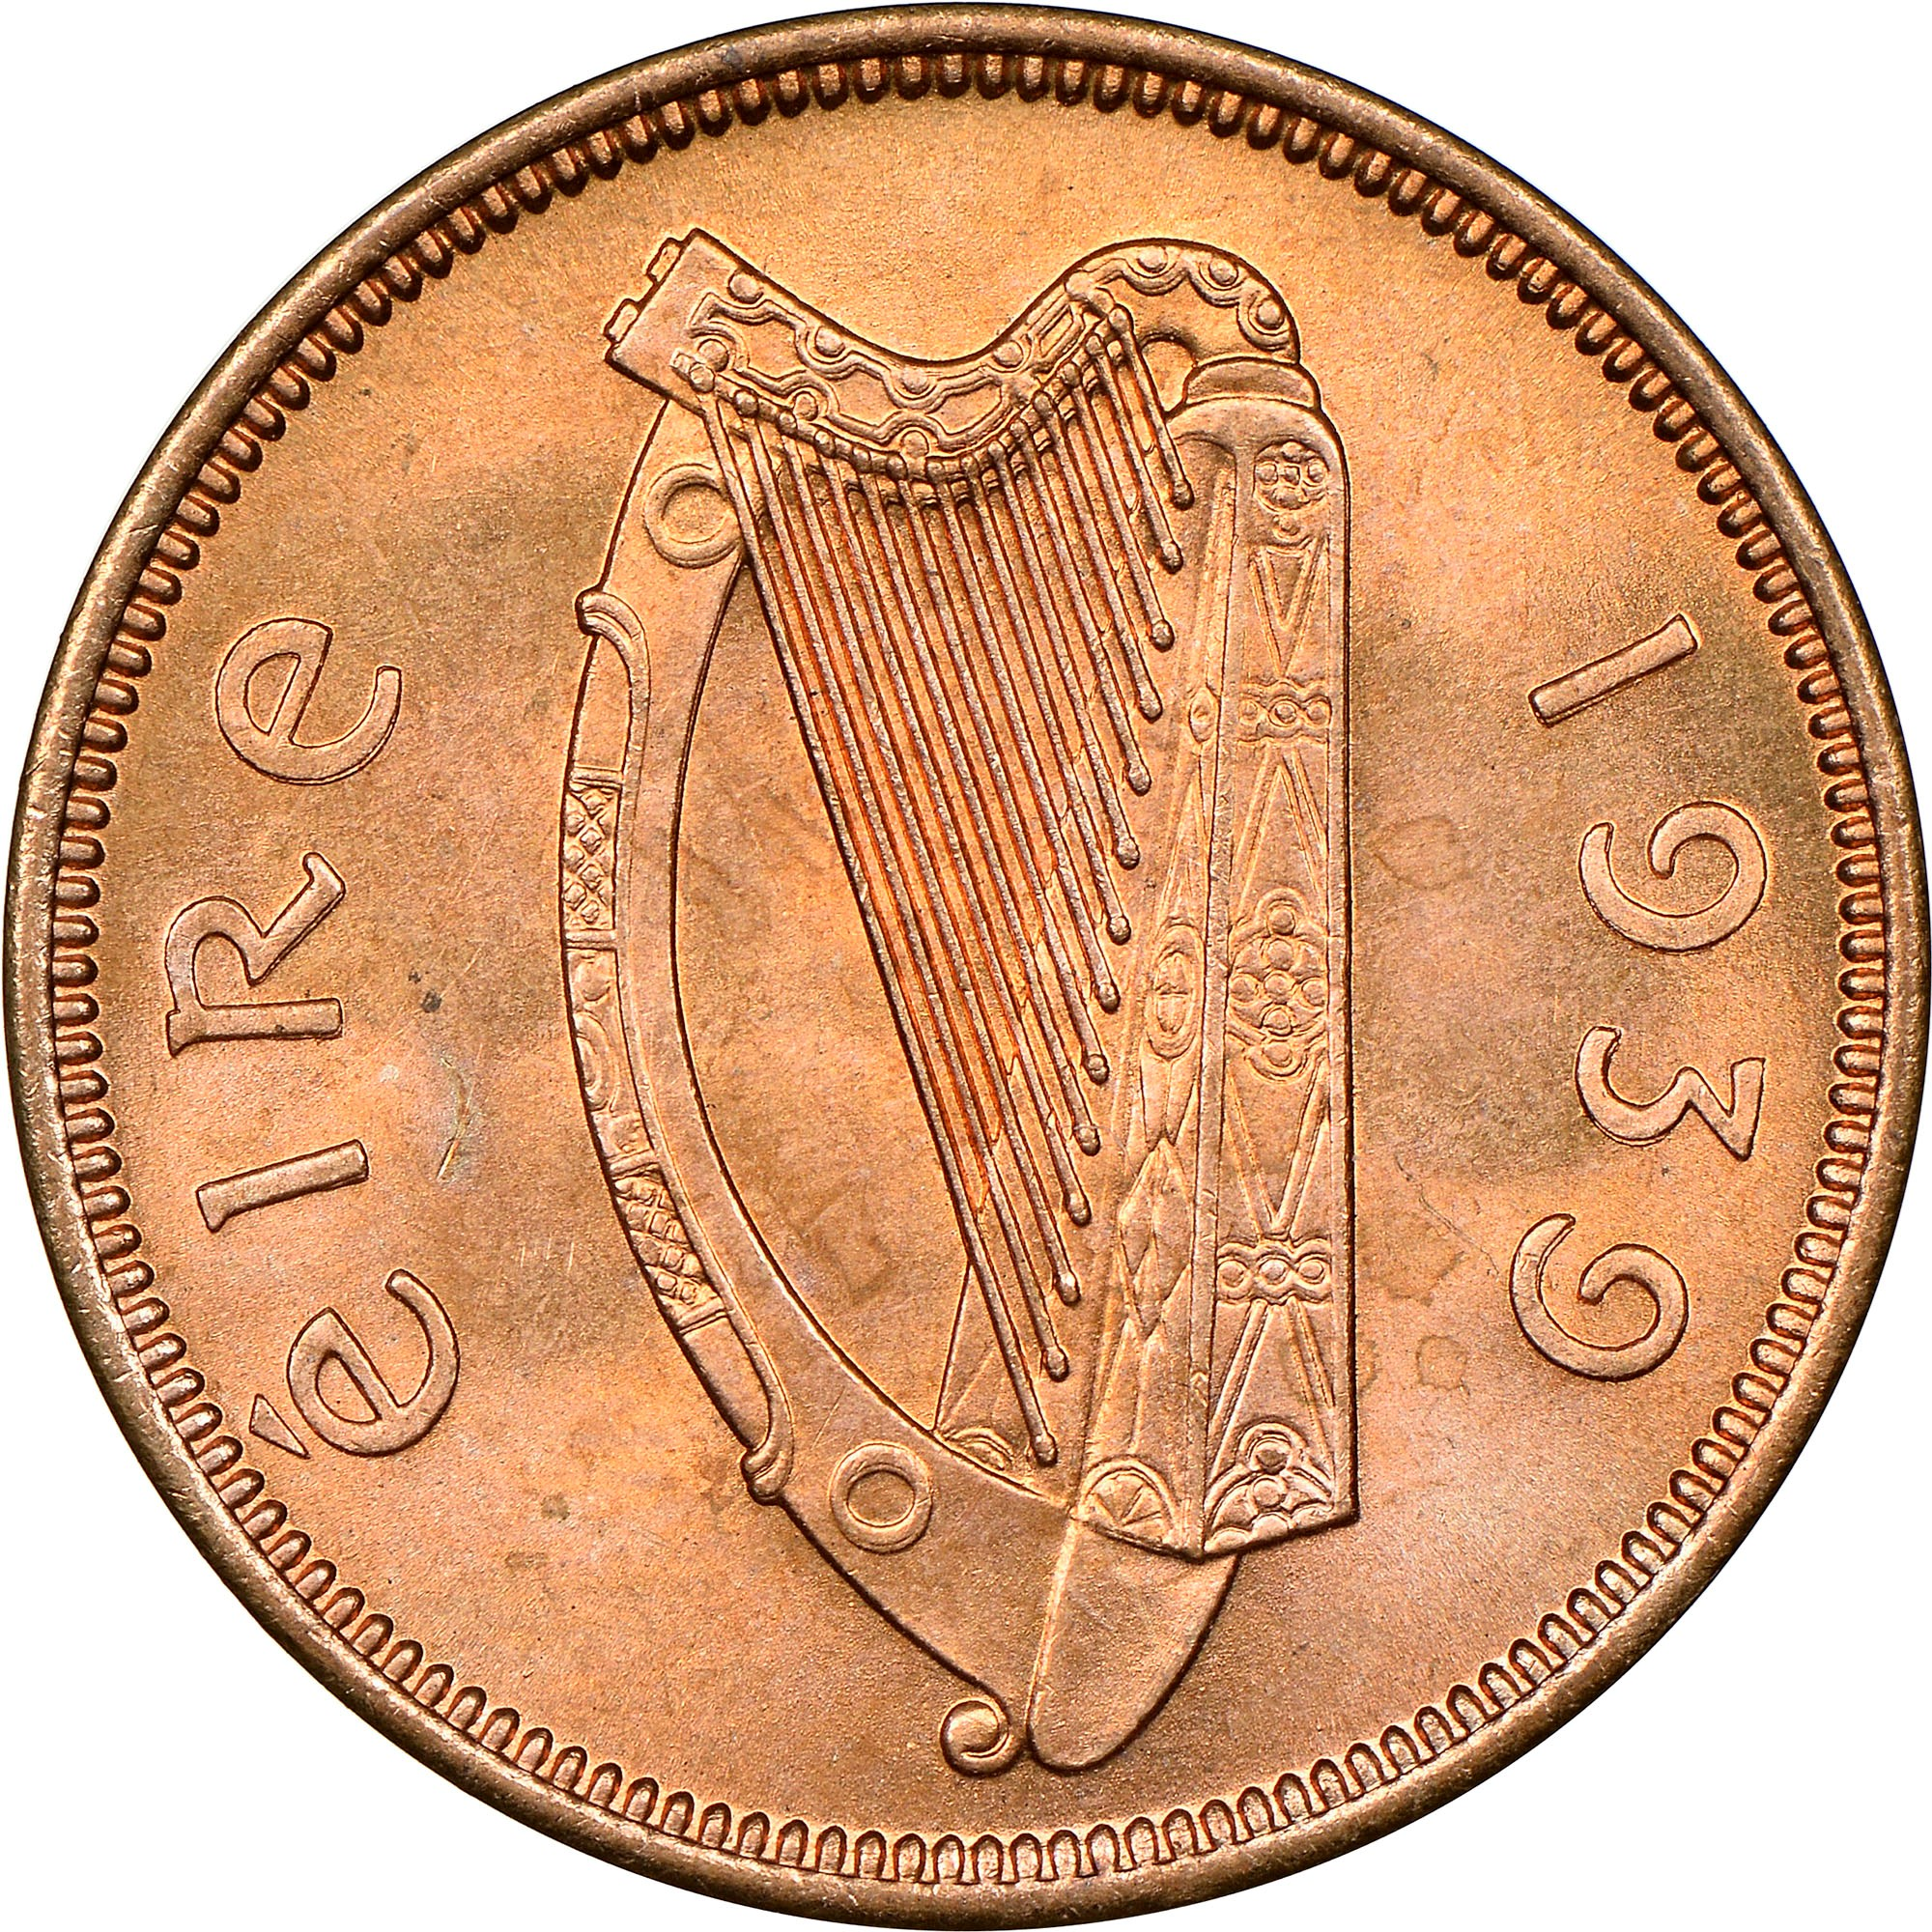 what is an eire coin